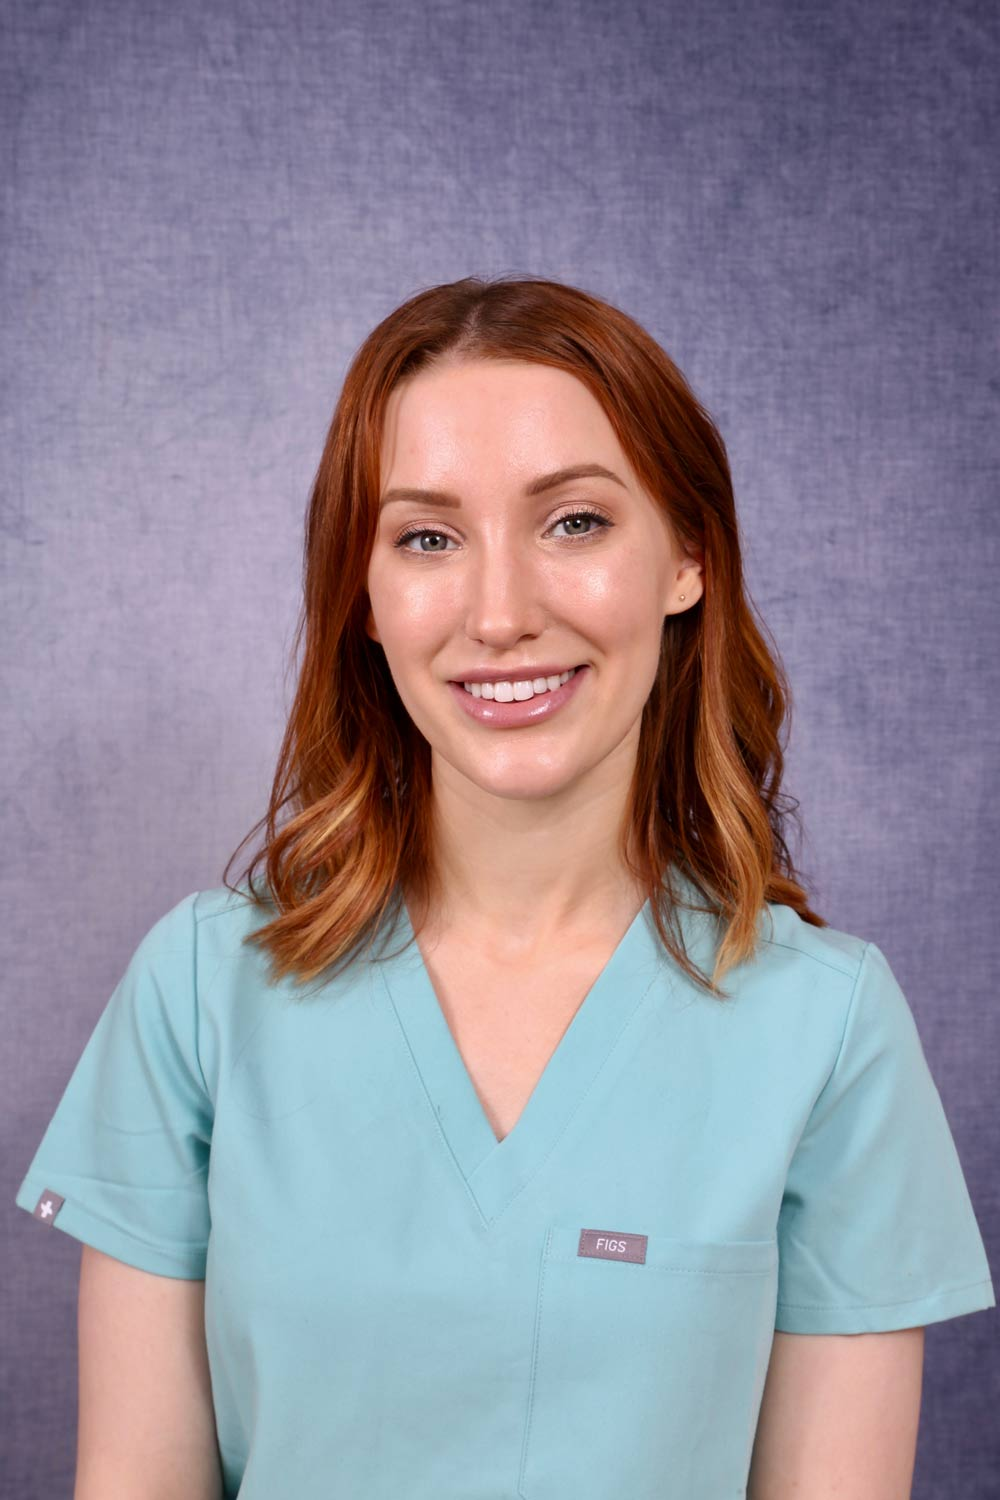 Erin Harrington, LE, CLT of CNY Cosmetic & Reconstructive Surgery, LCC in Syracuse, New York